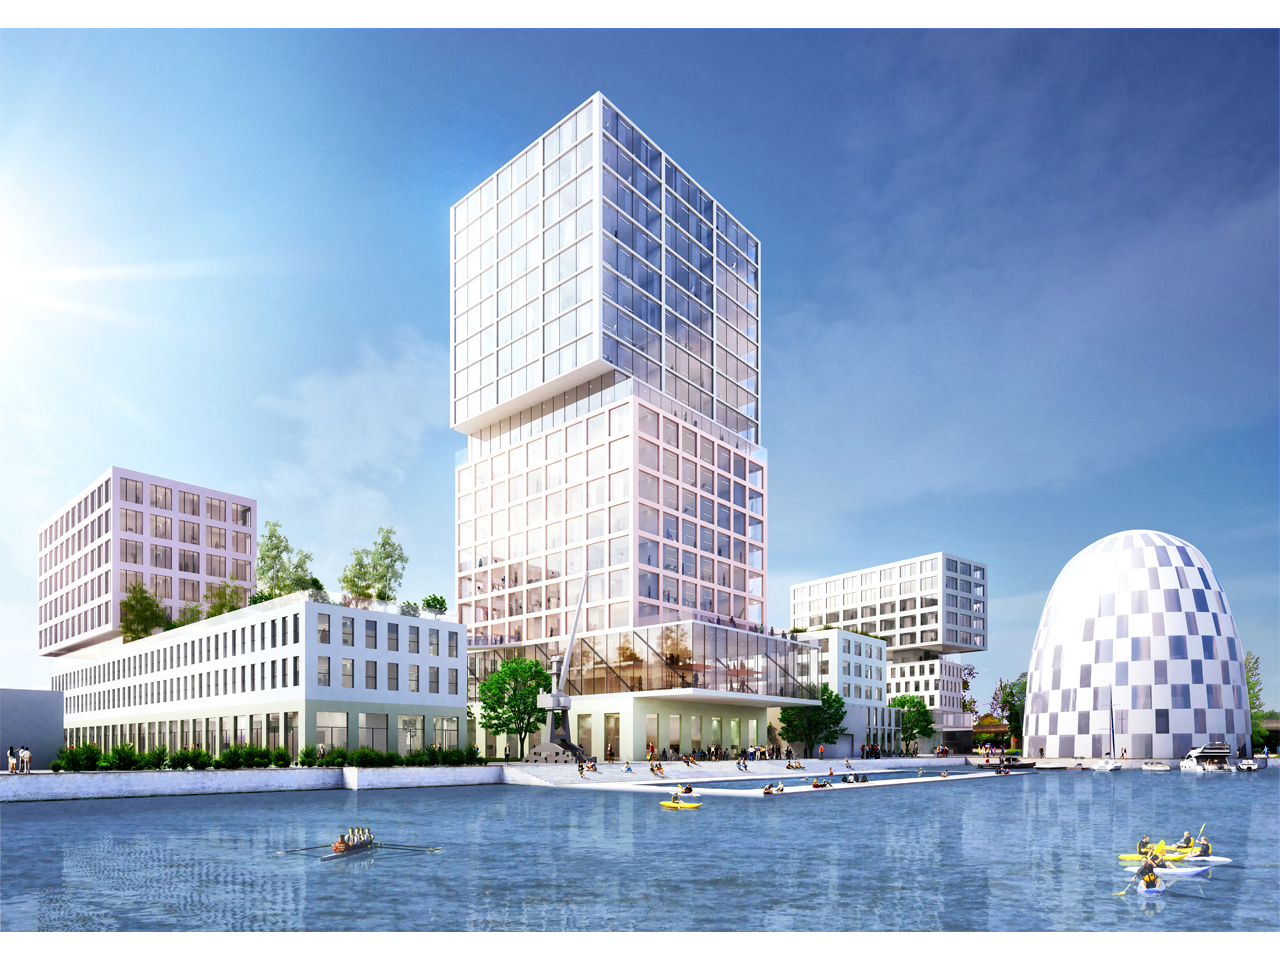 MVRDV wins the competition for design of a 70,000 m2 mixed use masterplan of Hamburg Innovation Port